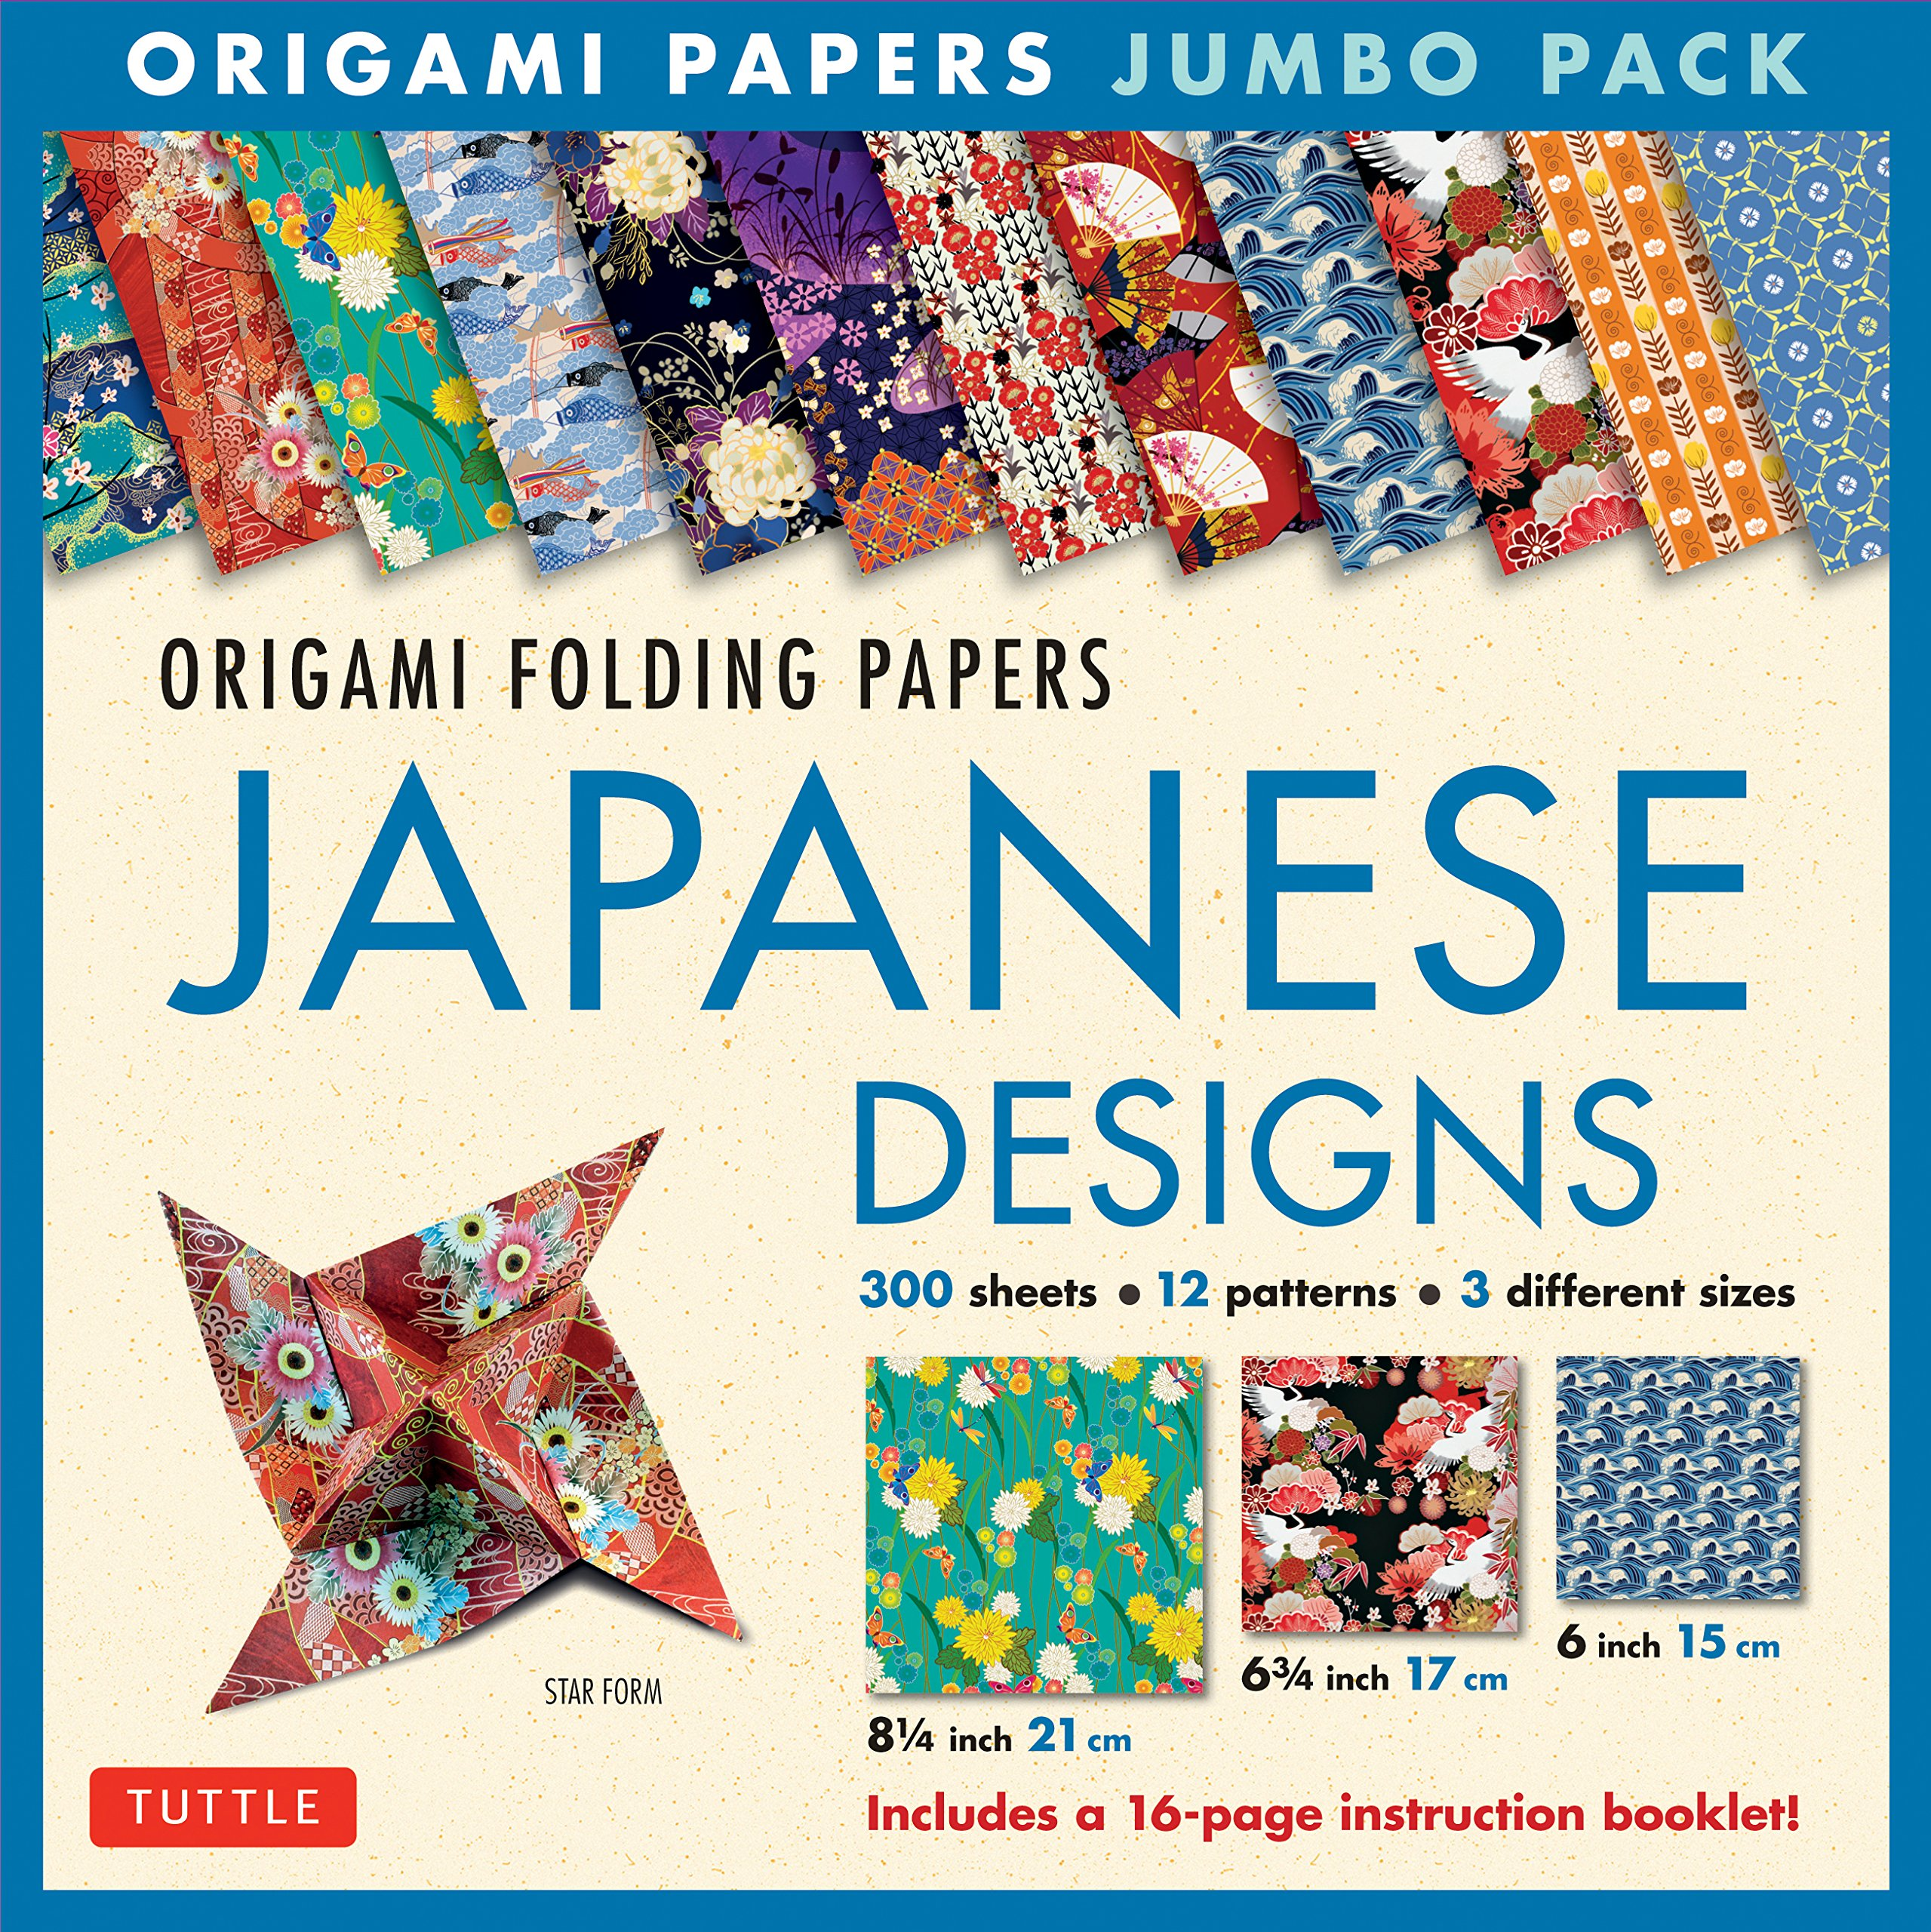 Origami Folding Papers Jumbo Pack: Japanese Designs: 300 High-Quality Origami Papers in 3 Sizes (6 inch; 6 3/4 inch and 8 1/4 inch) and a 16-page Instructional Origami Book Paperback – January 31, 2017 Tuttle Publishing 0804847290 ART / Prints NON-CLASSIFI